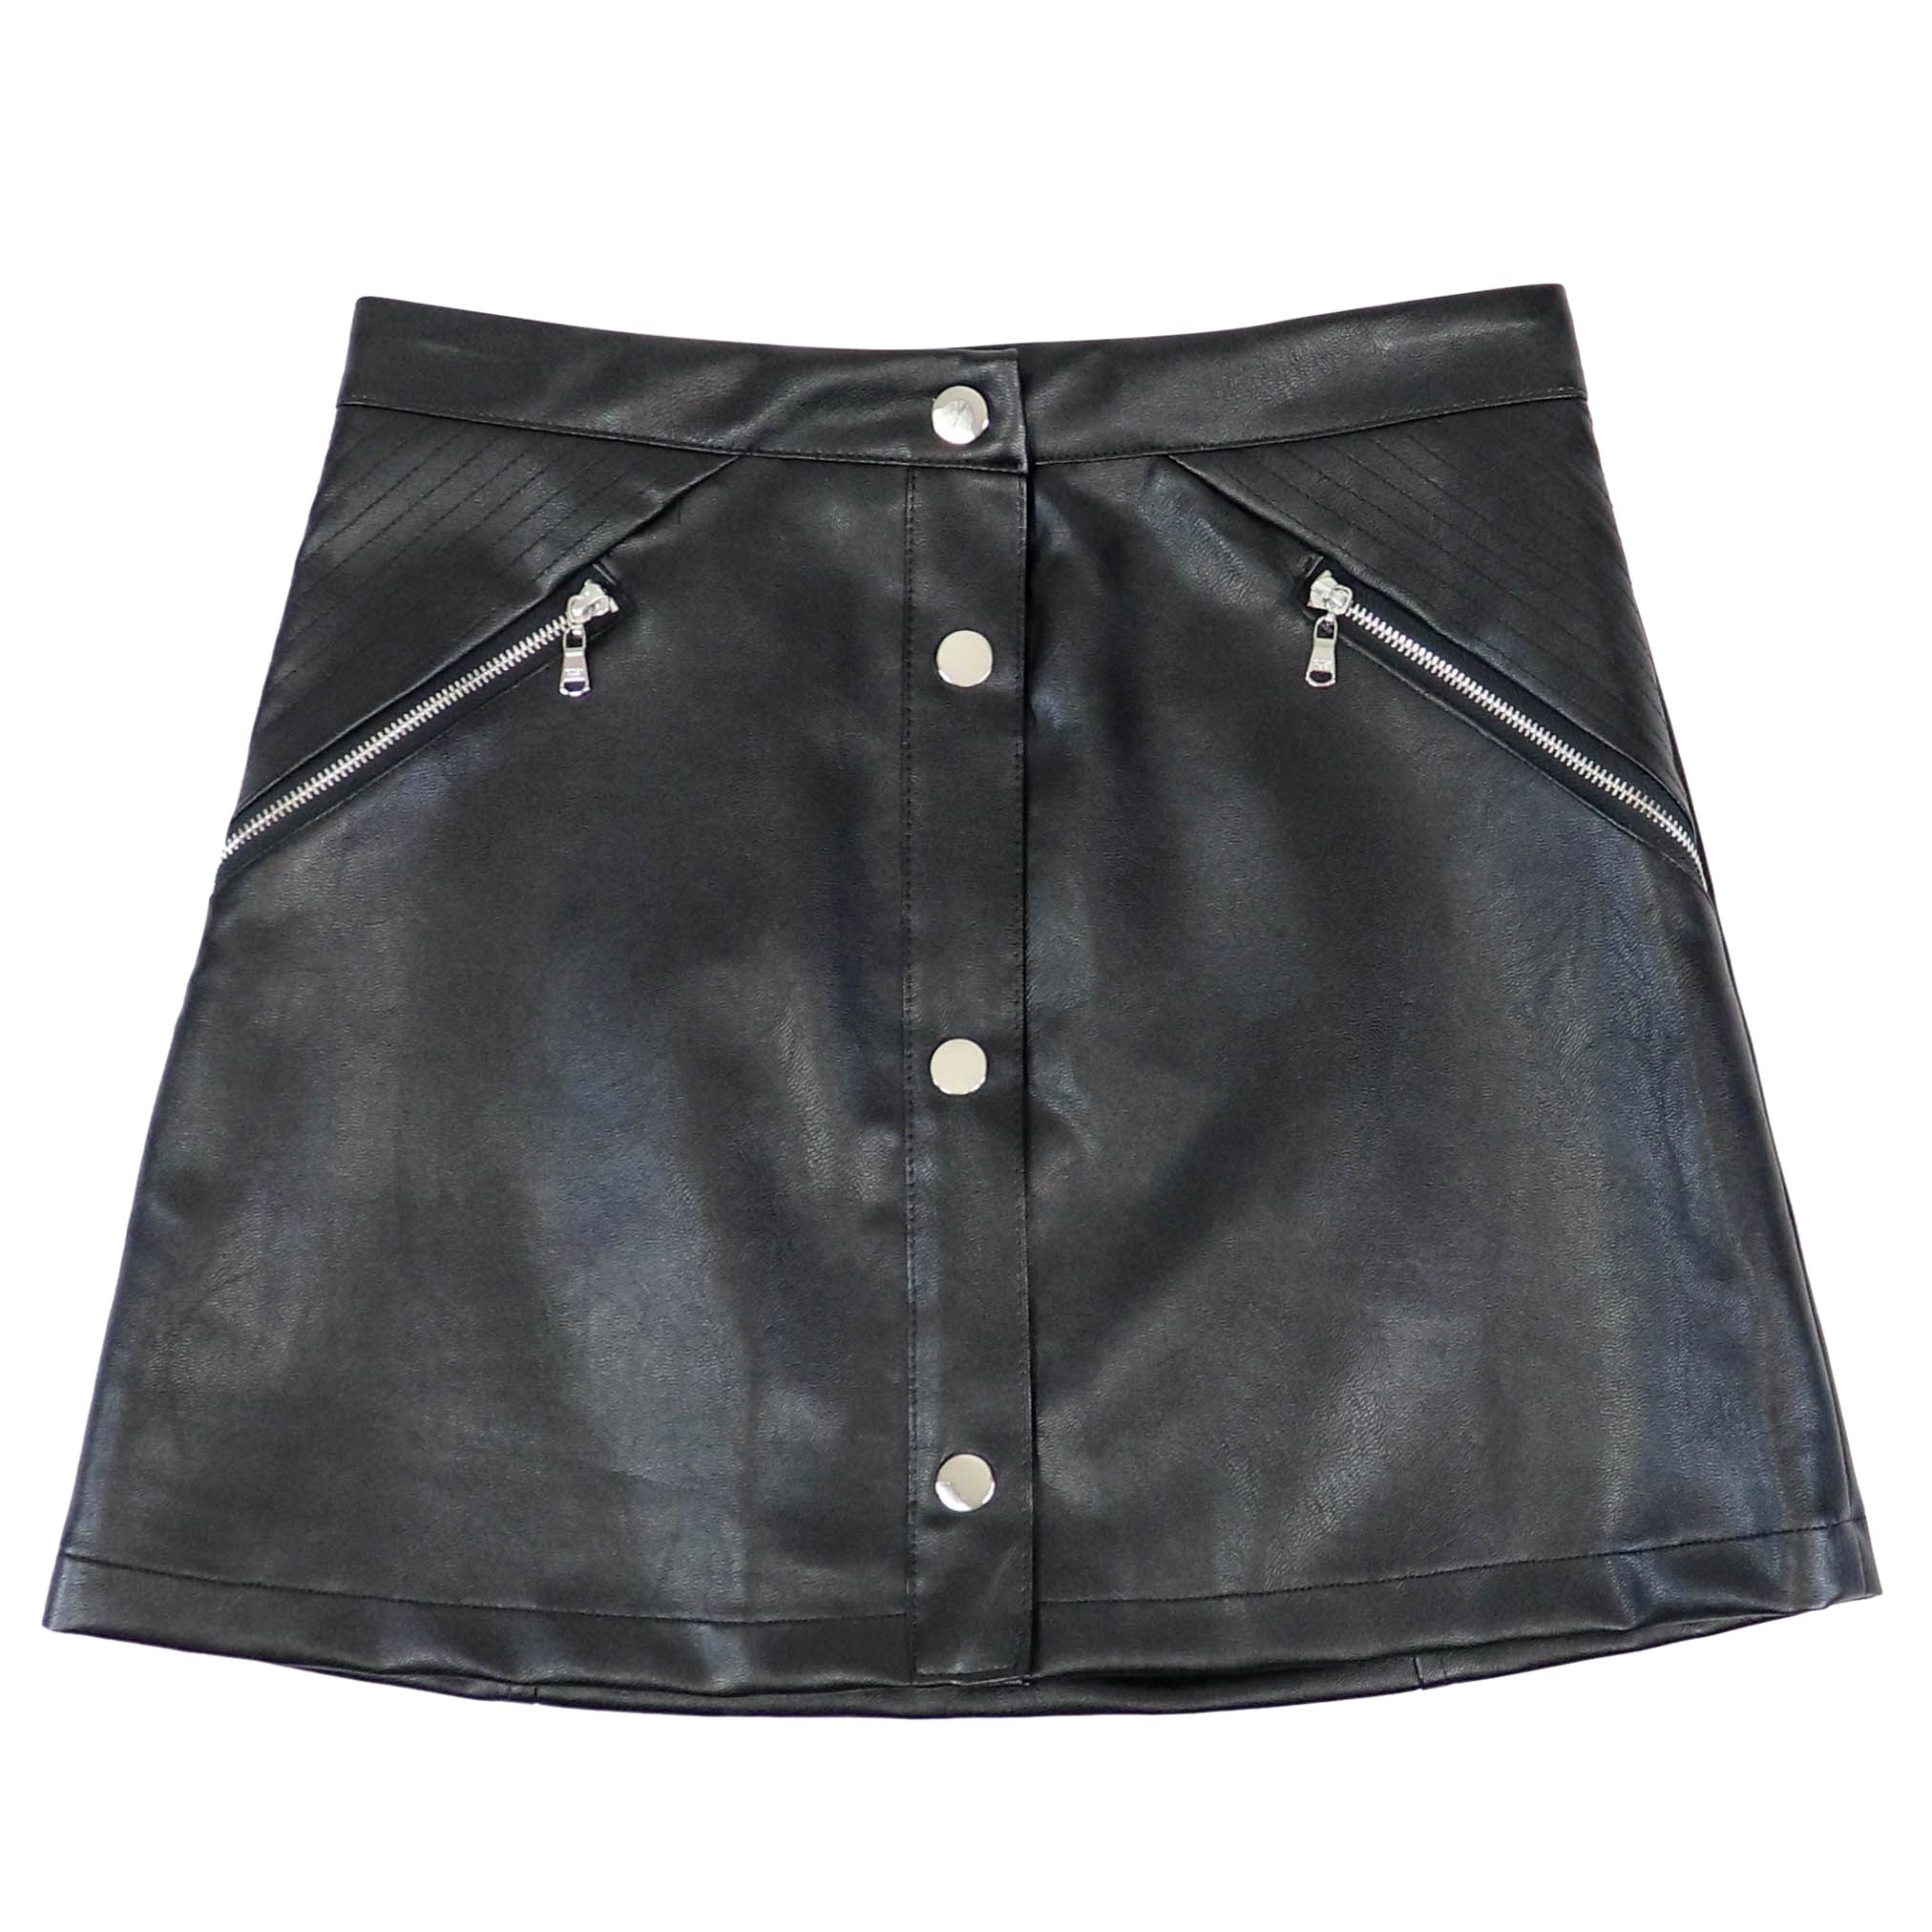 release date 3442f c845a Skirt in eco-leather with zip and metal buttons